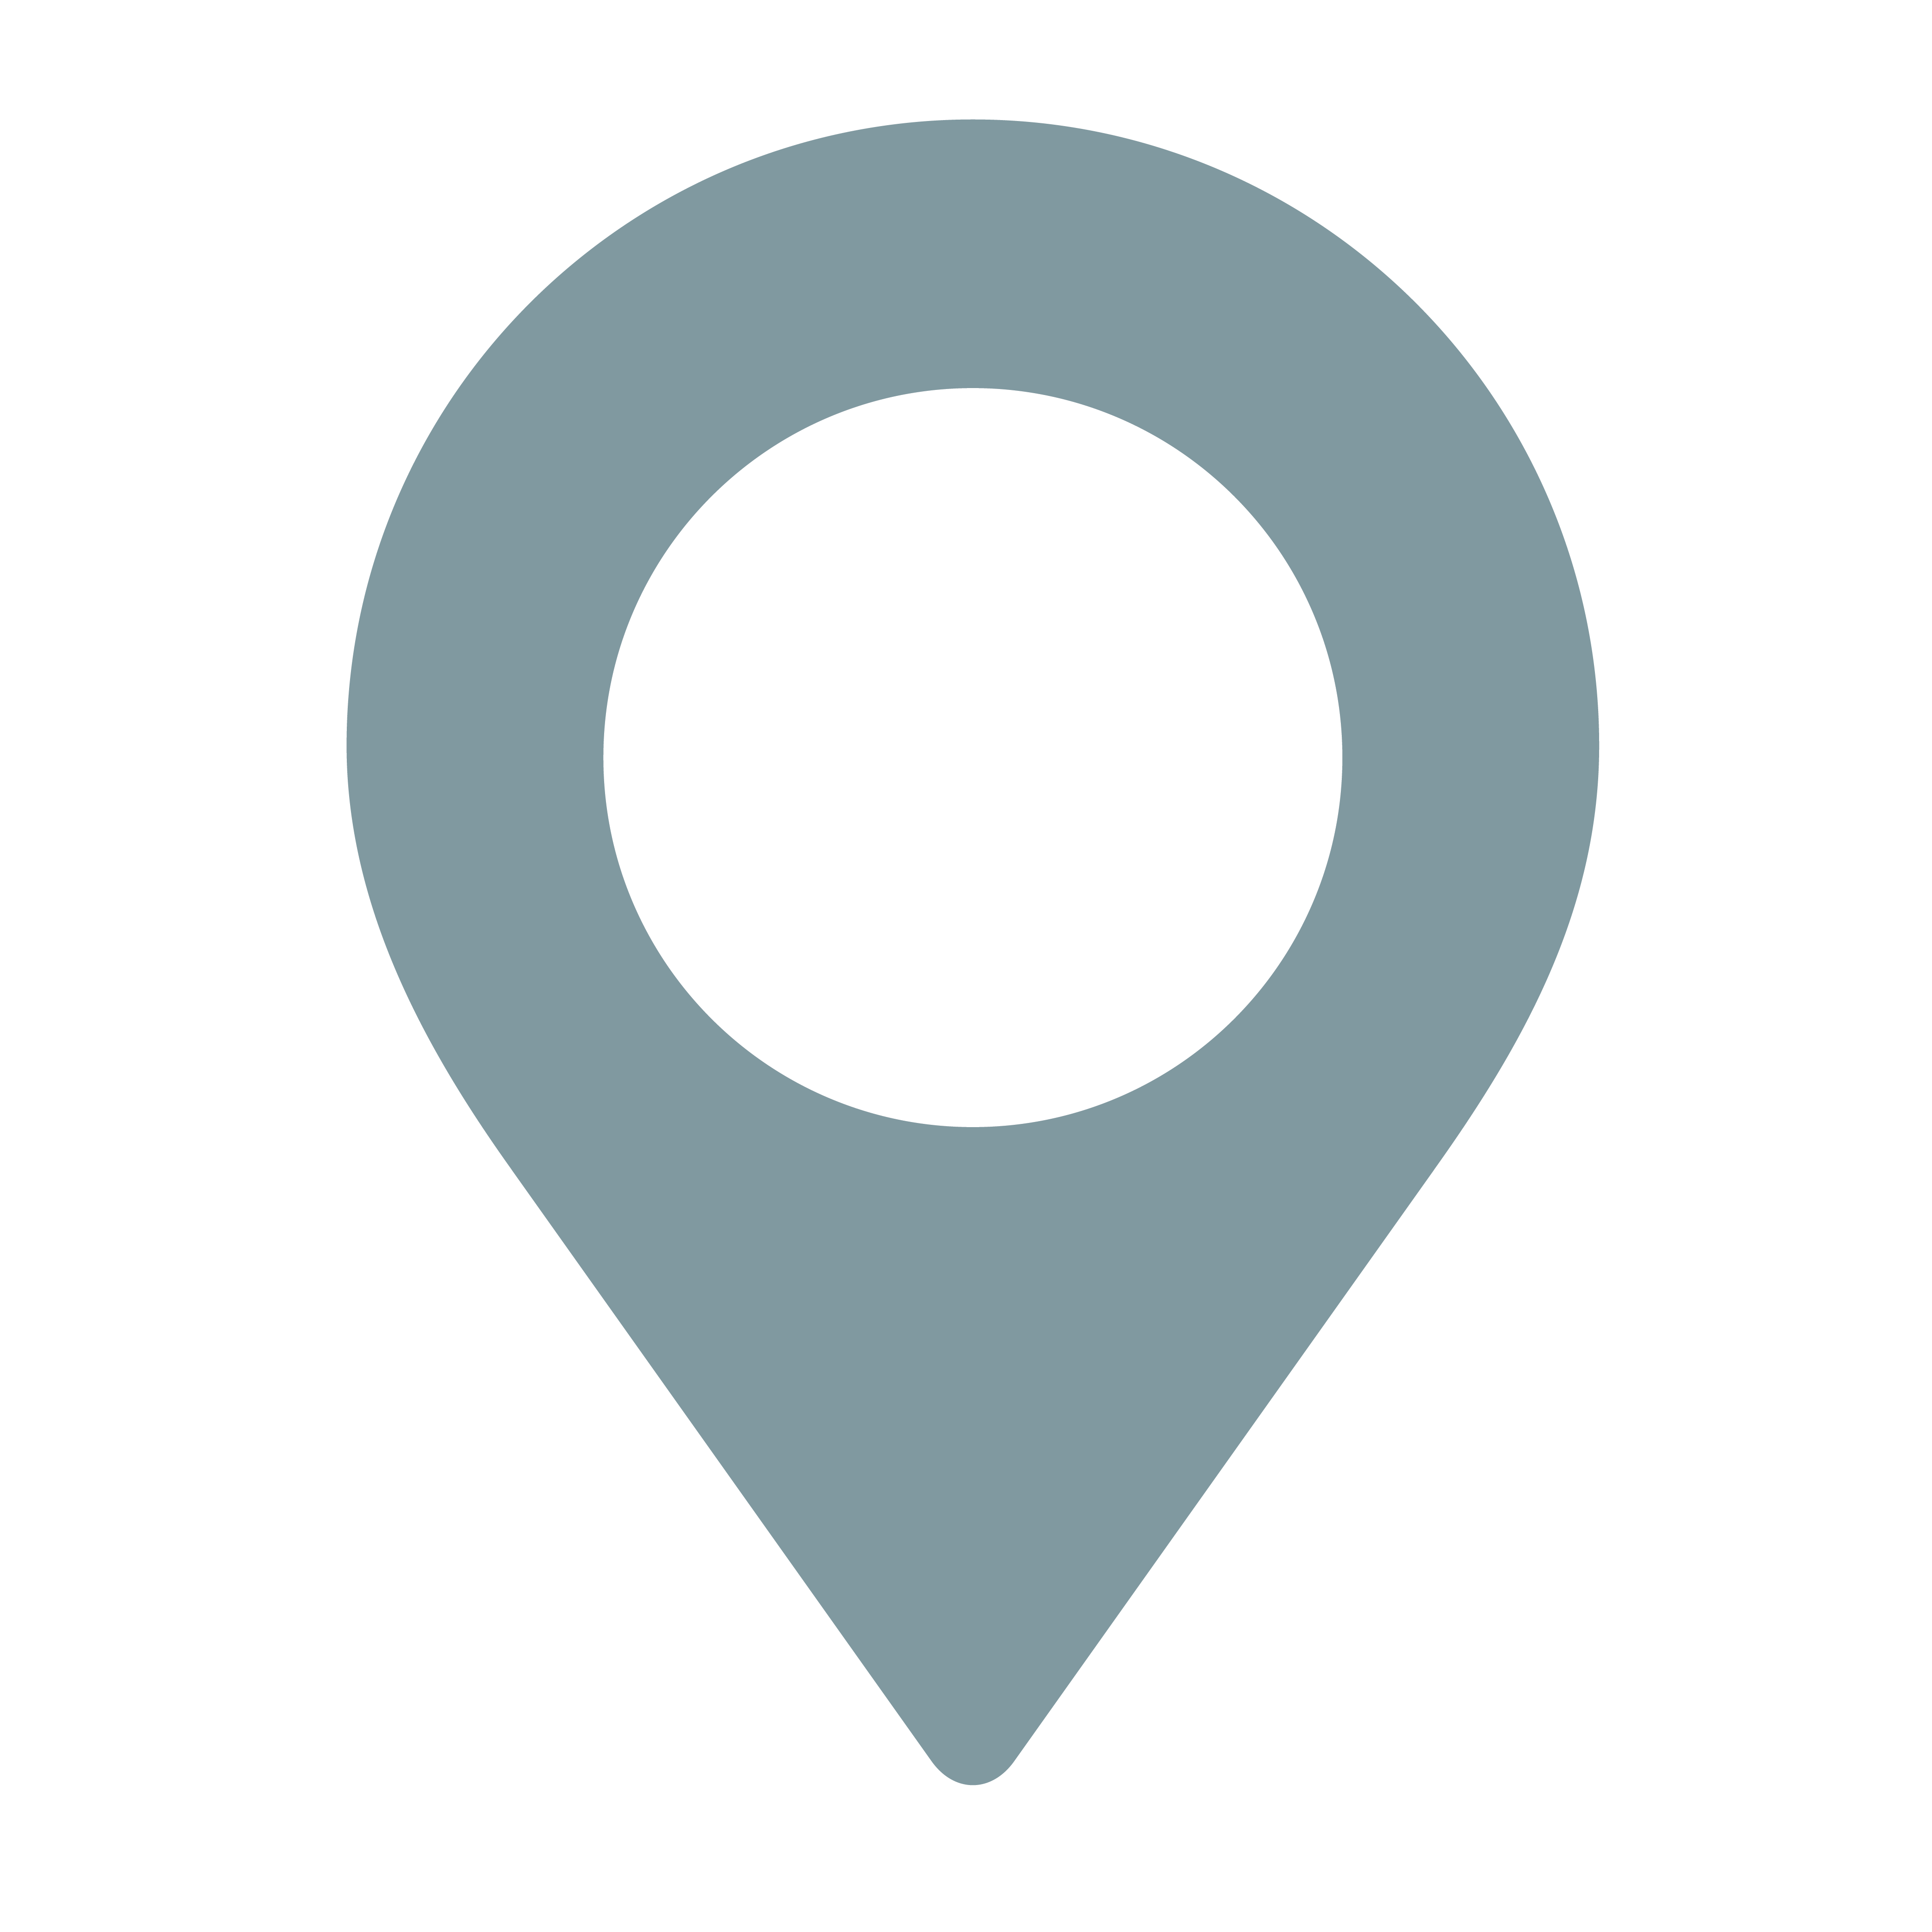 An icon for location